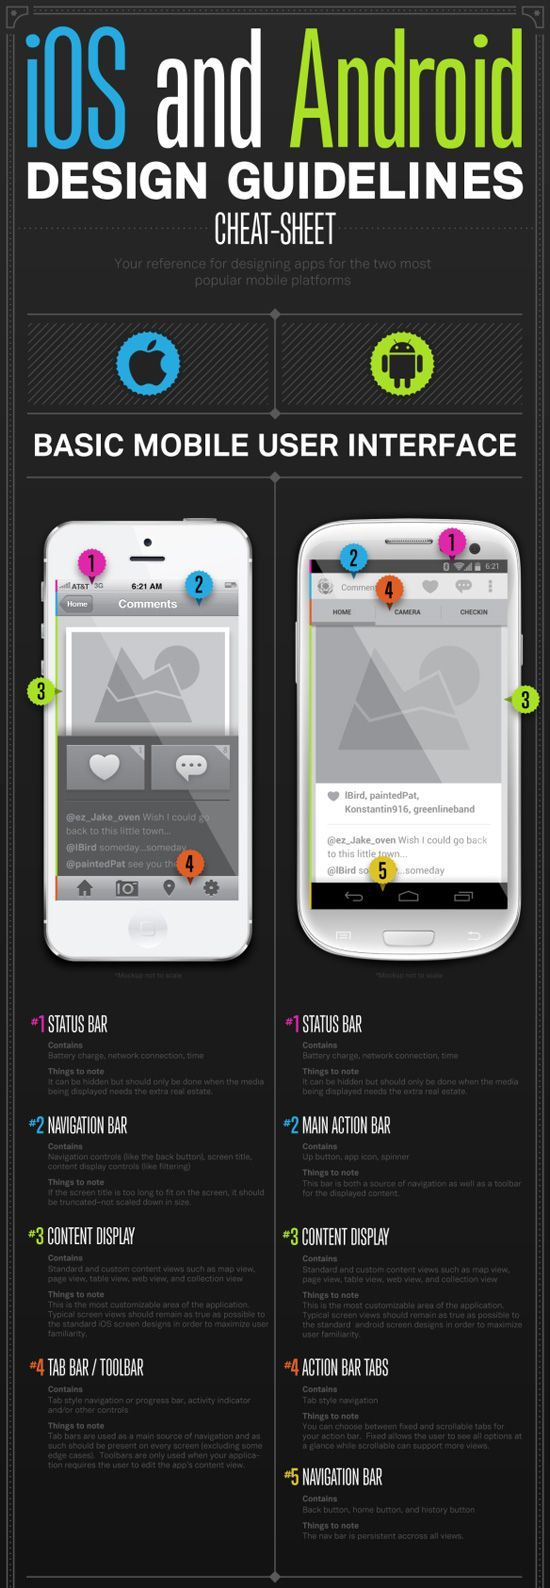 30 Cheatsheets And Infographics For Mobile App Developers Retail Strategy & Implementation delivers the vision and capability that turns technology into retail success. http://fsstudio.com/services/custom-mobile-application-development-in-san-francisco-bay-area/